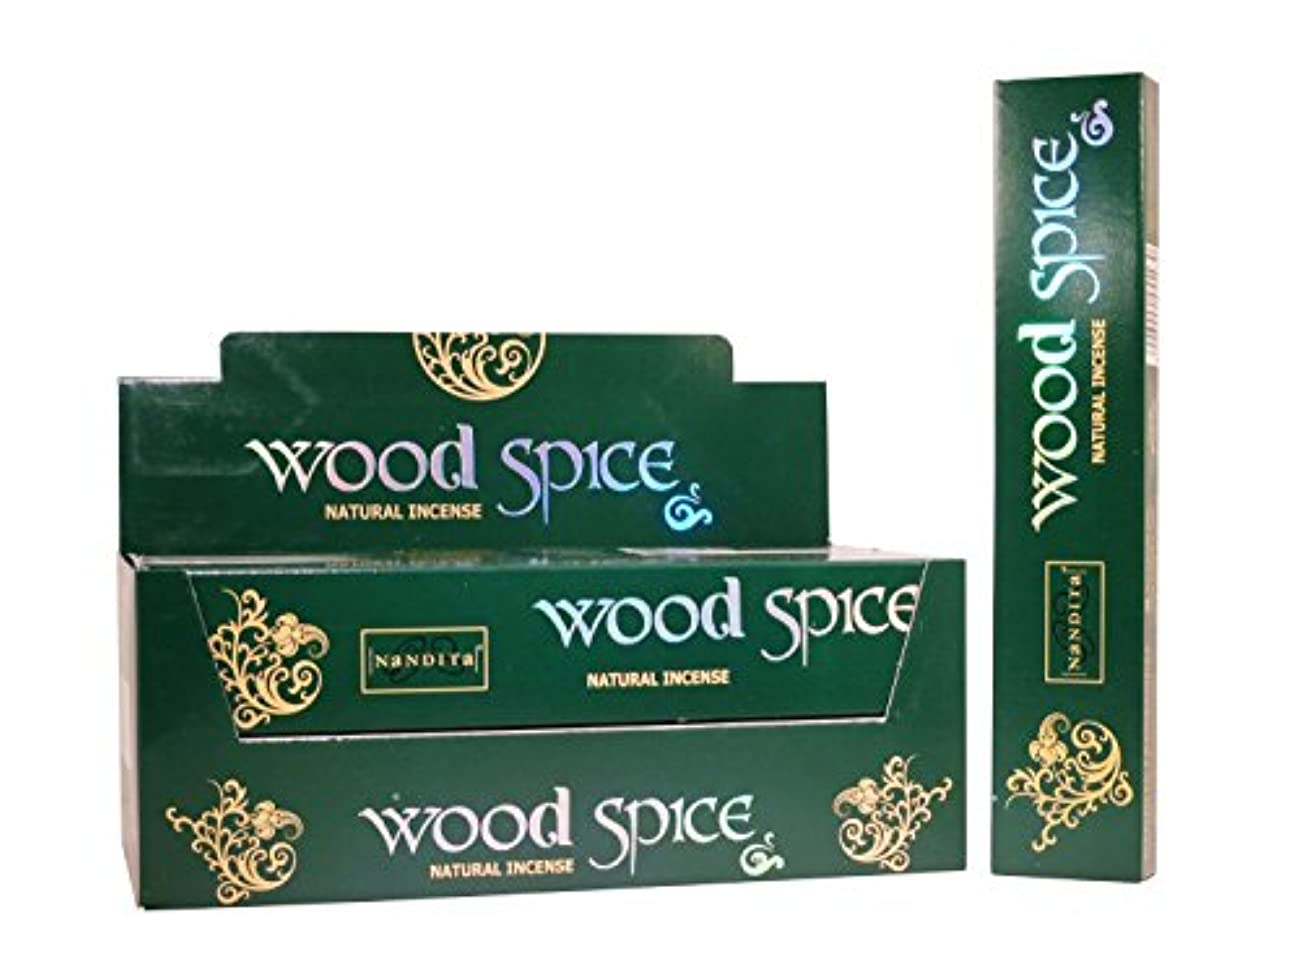 注釈緑死ぬNandita Wood Spice Natural Incense